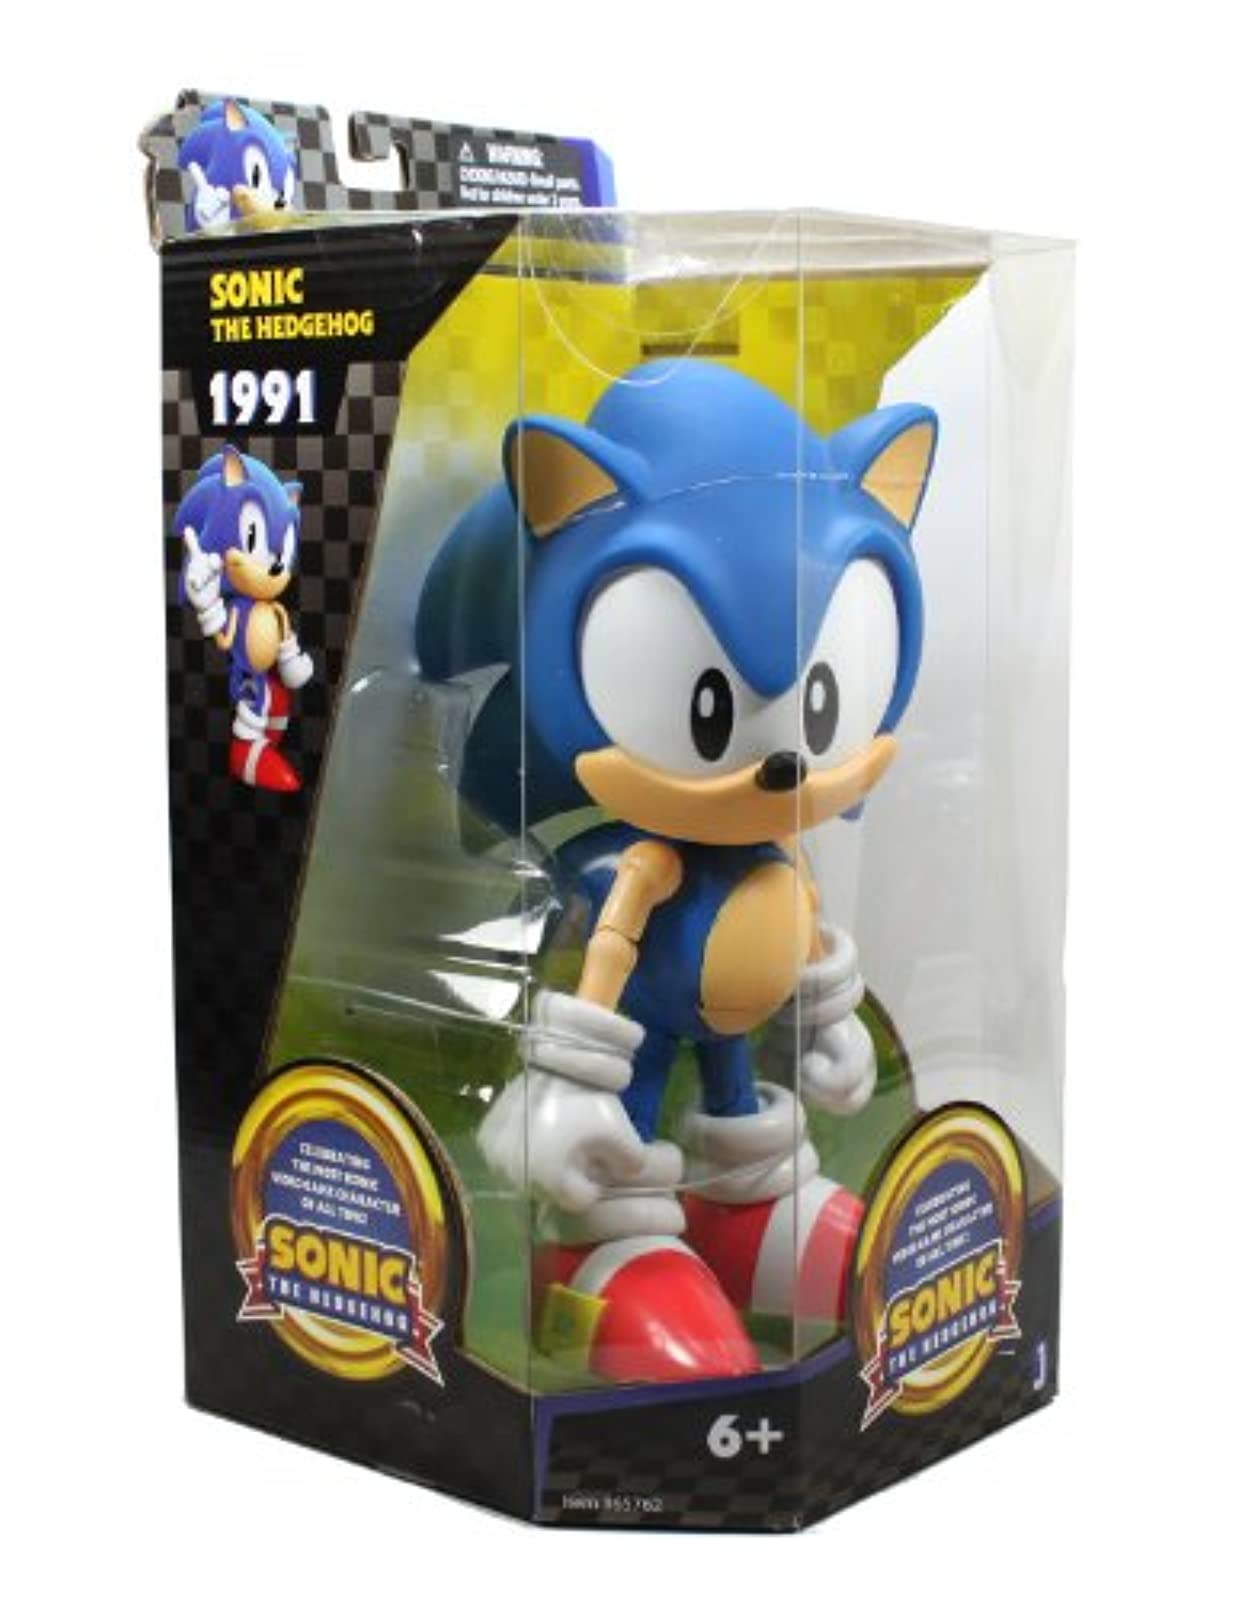 Jazwares Sonic The Hedgehog 20th Anniversary 10 Action Figure Toy Figurine YMD8